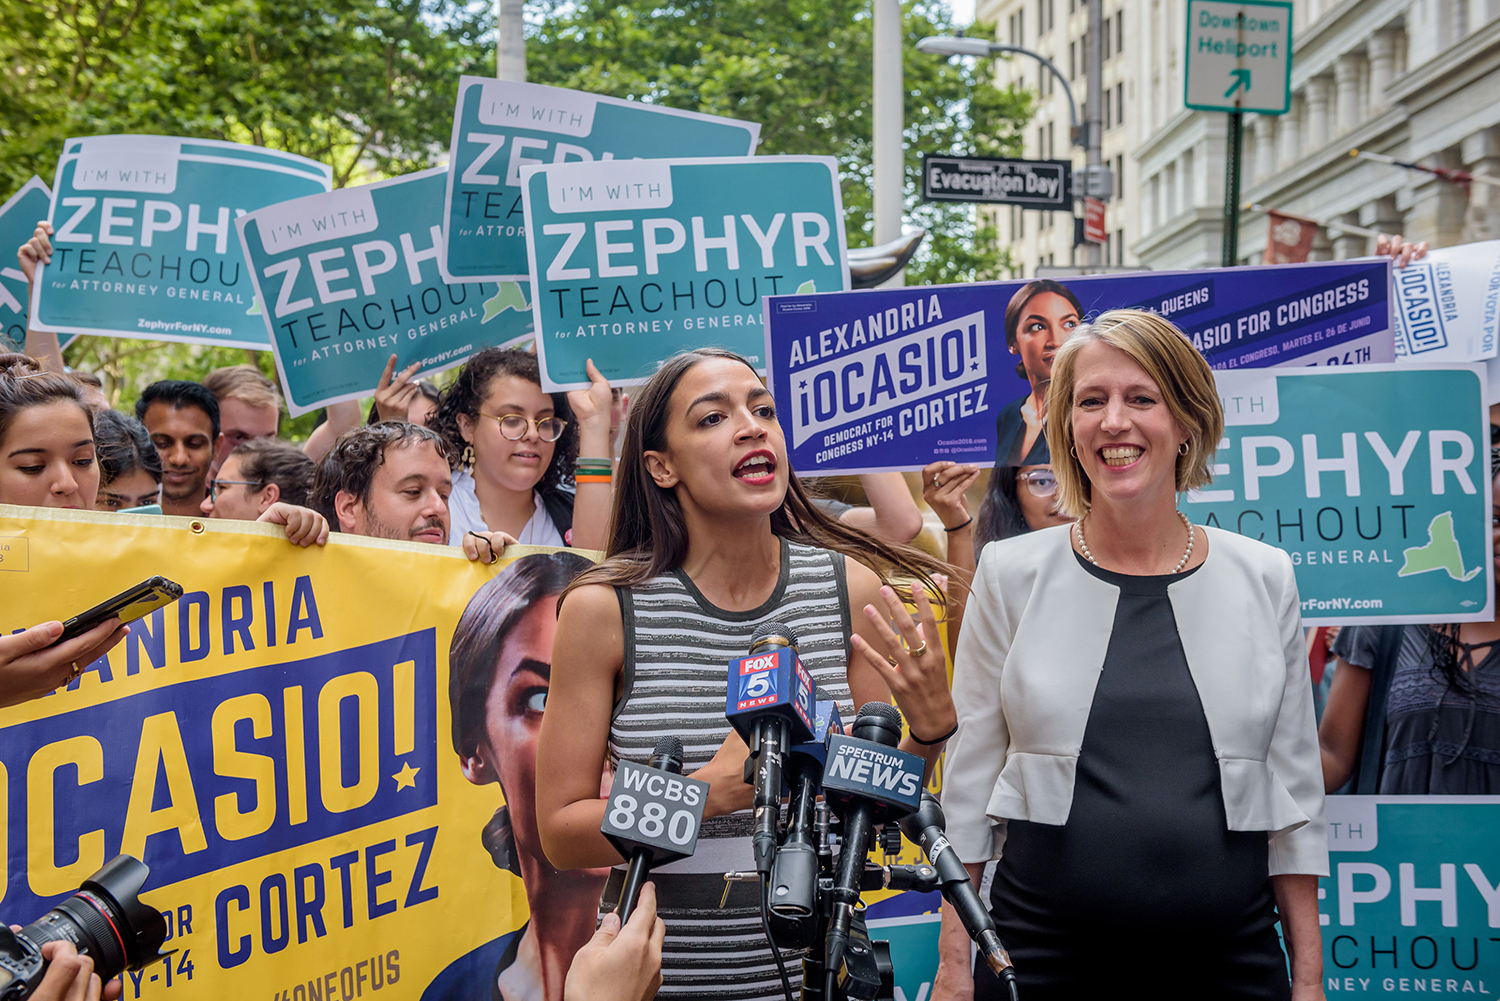 Alexandria Ocasio-Cortez announces her endorsement of Zephyr Teachout for New York attorney general on July 12, 2018, at the Charging Bull statue in lower Manhattan, New York. (Erik McGregor/Sipa USA/TNS)